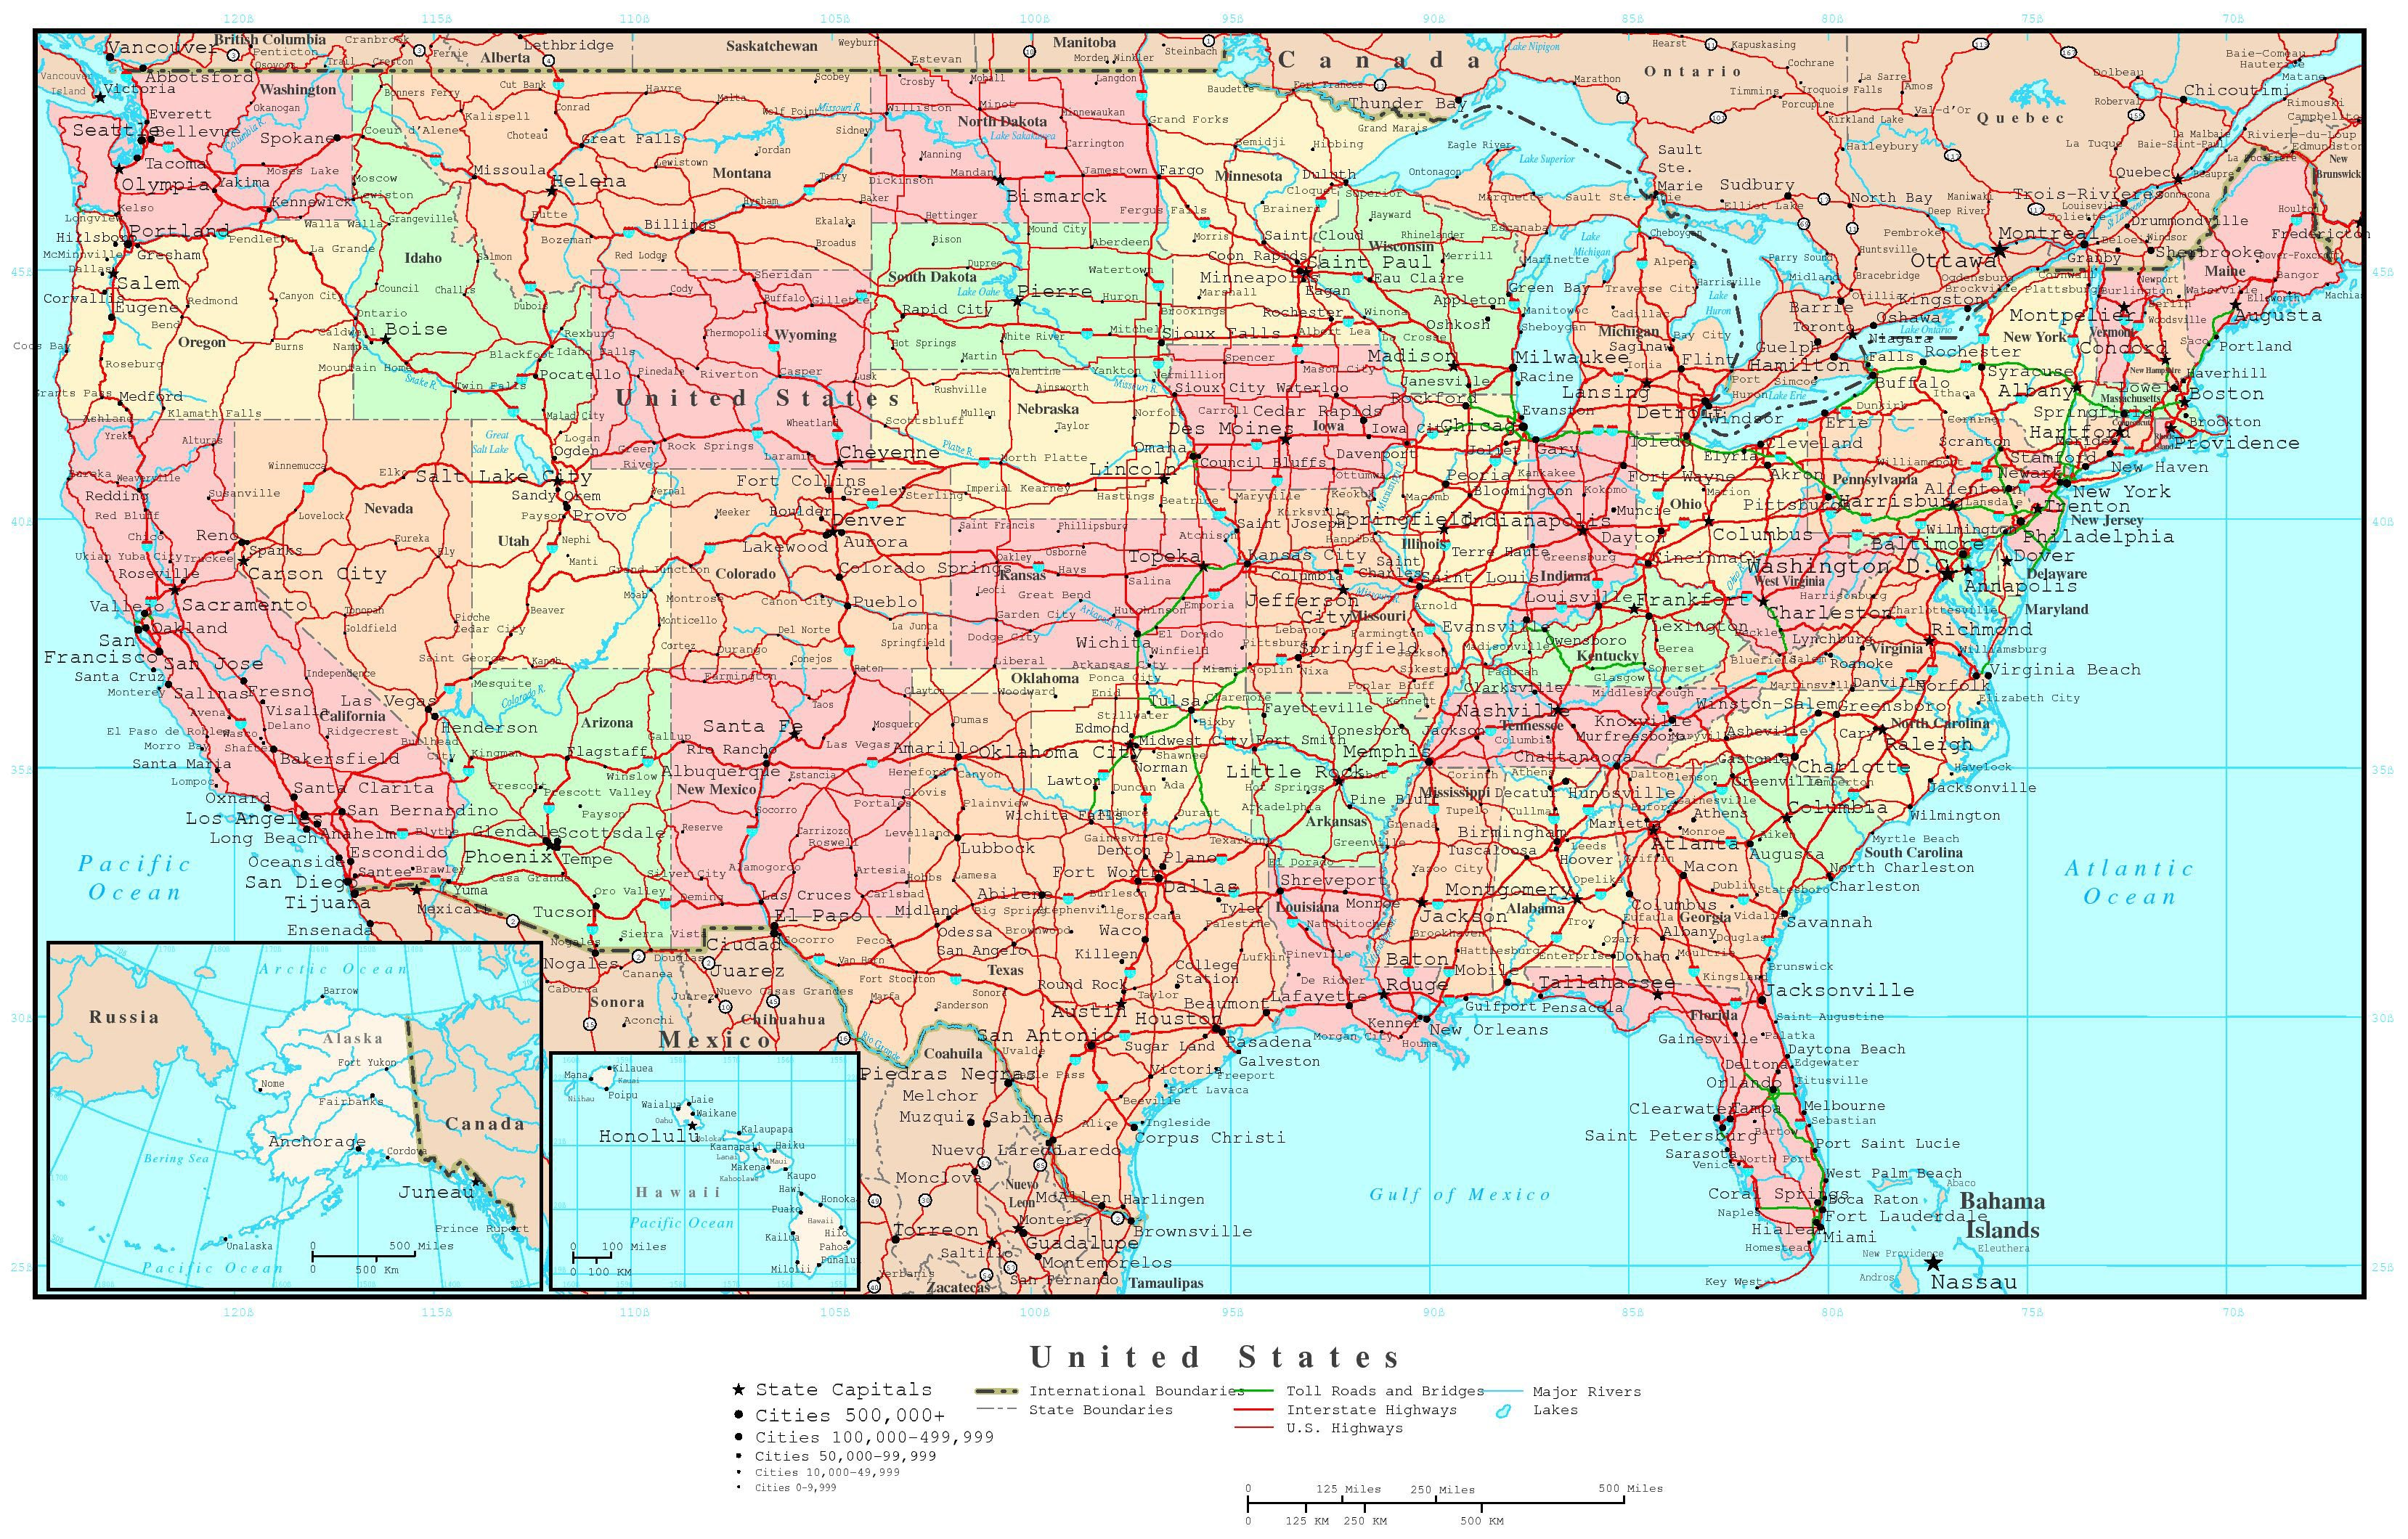 Обои highway, map, Route 66, north america, border, Road, usа, miscellanea, united states of america. Разное foto 11